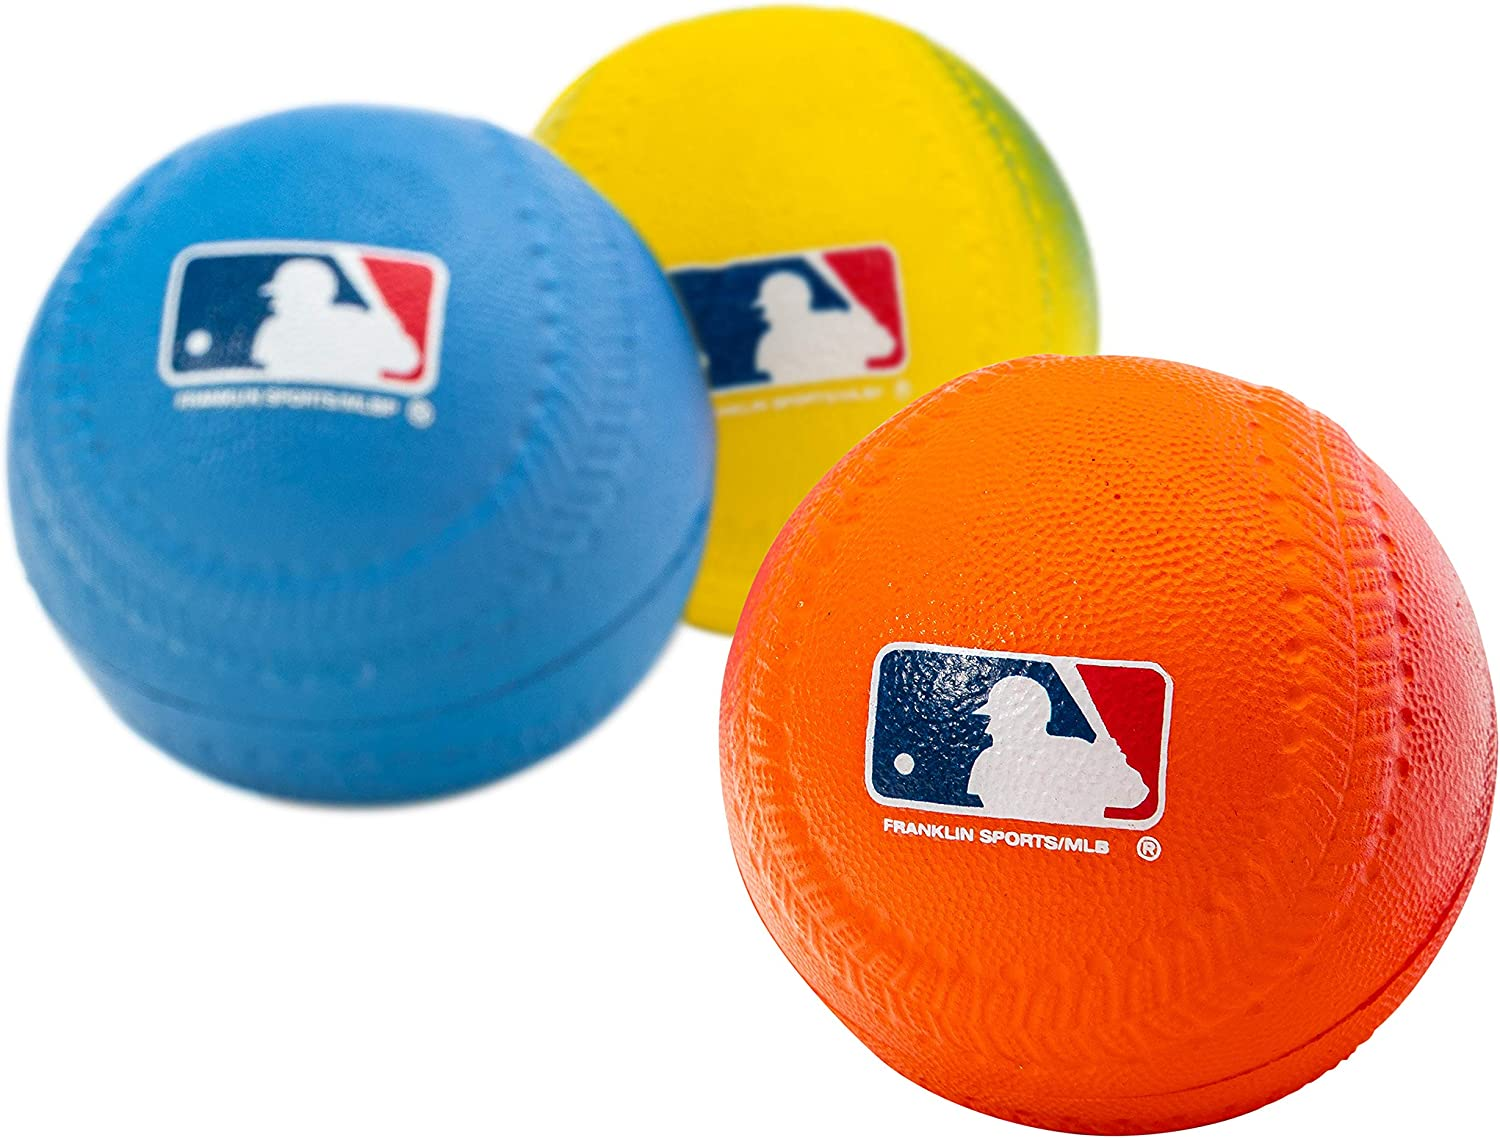 Franklin Sports Foam Baseballs - Soft Foam Practice Baseballs for Kids - Perfect for Hitting and Indoor or Outdoor Play - 3 Pack - Official MLB Licensed Product: Toys & Games